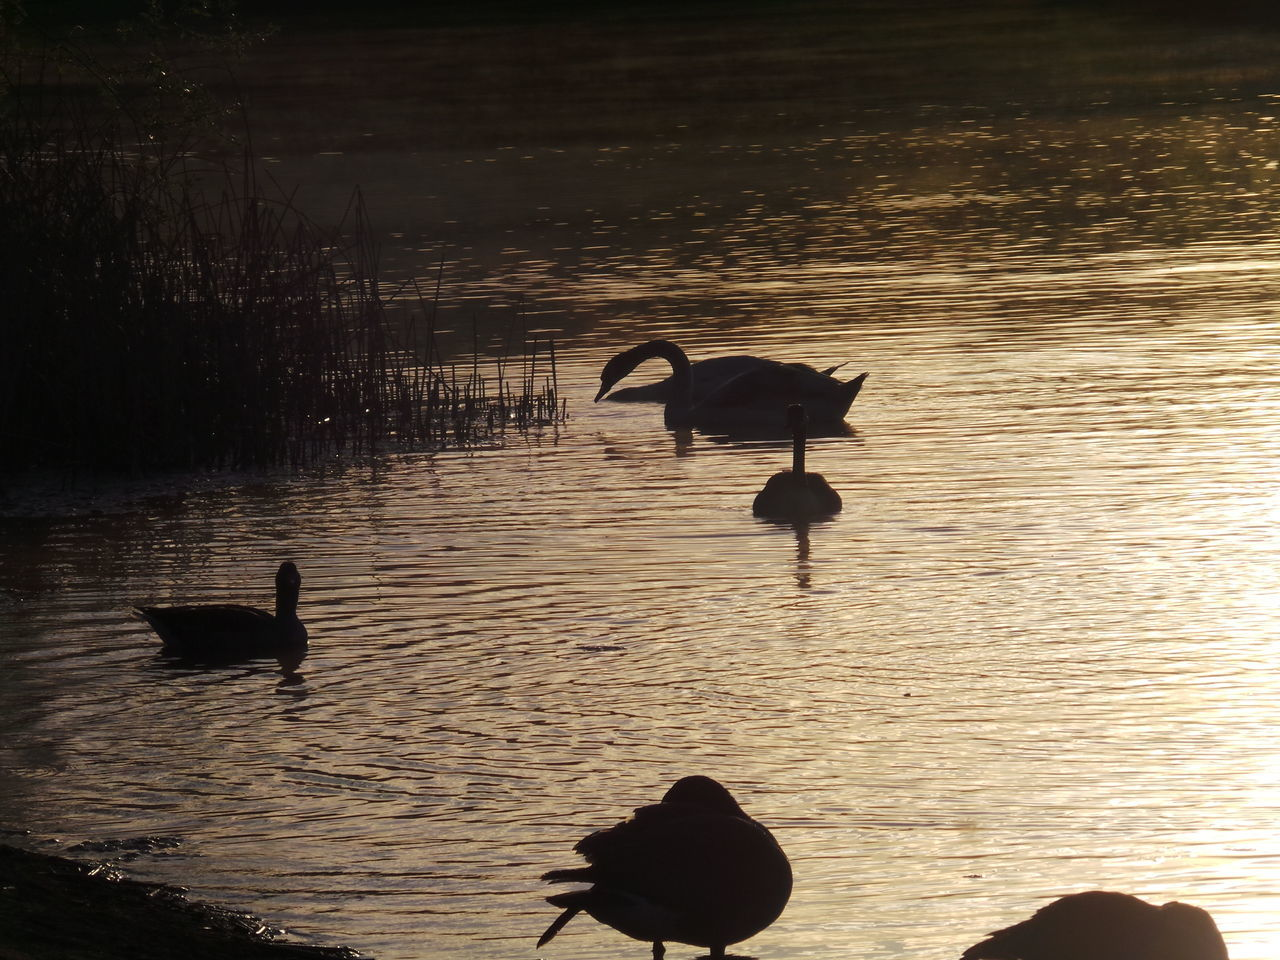 bird, animals in the wild, water, animal themes, silhouette, nature, reflection, animal wildlife, sunset, lake, swimming, beauty in nature, no people, scenics, outdoors, swan, day